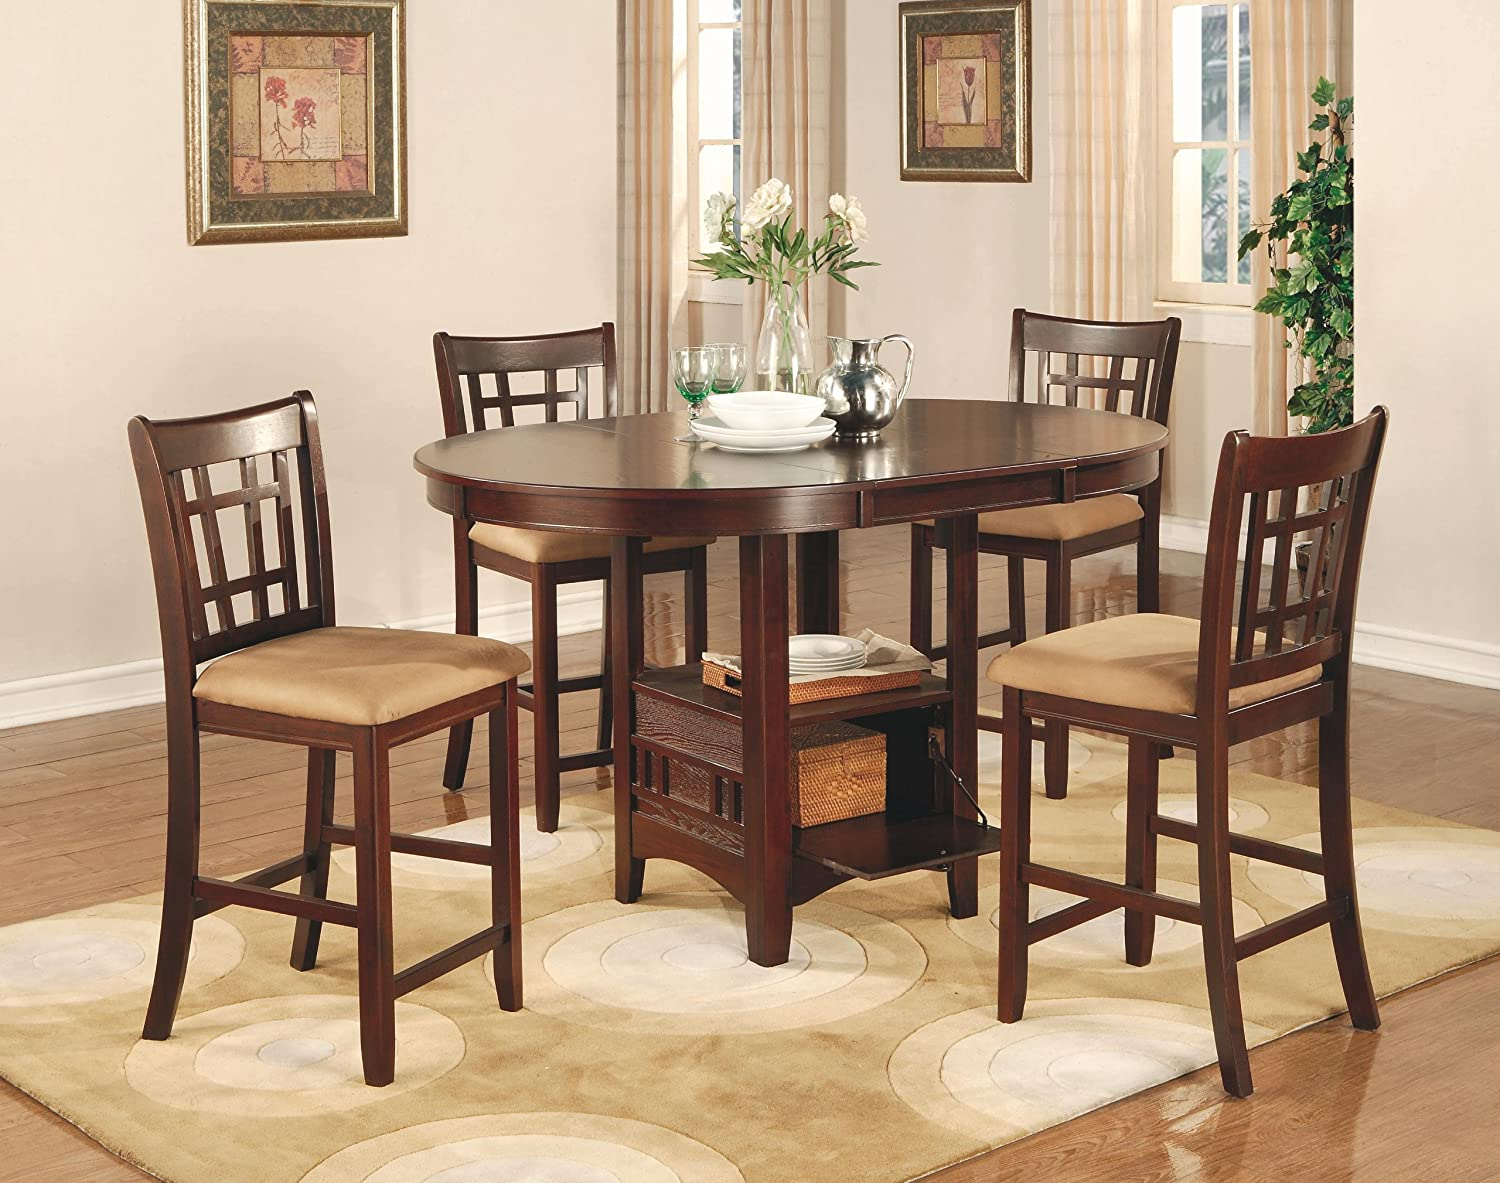 Amazon.com: Coaster Lavon 5 Piece Counter Table and Chair Set in ...